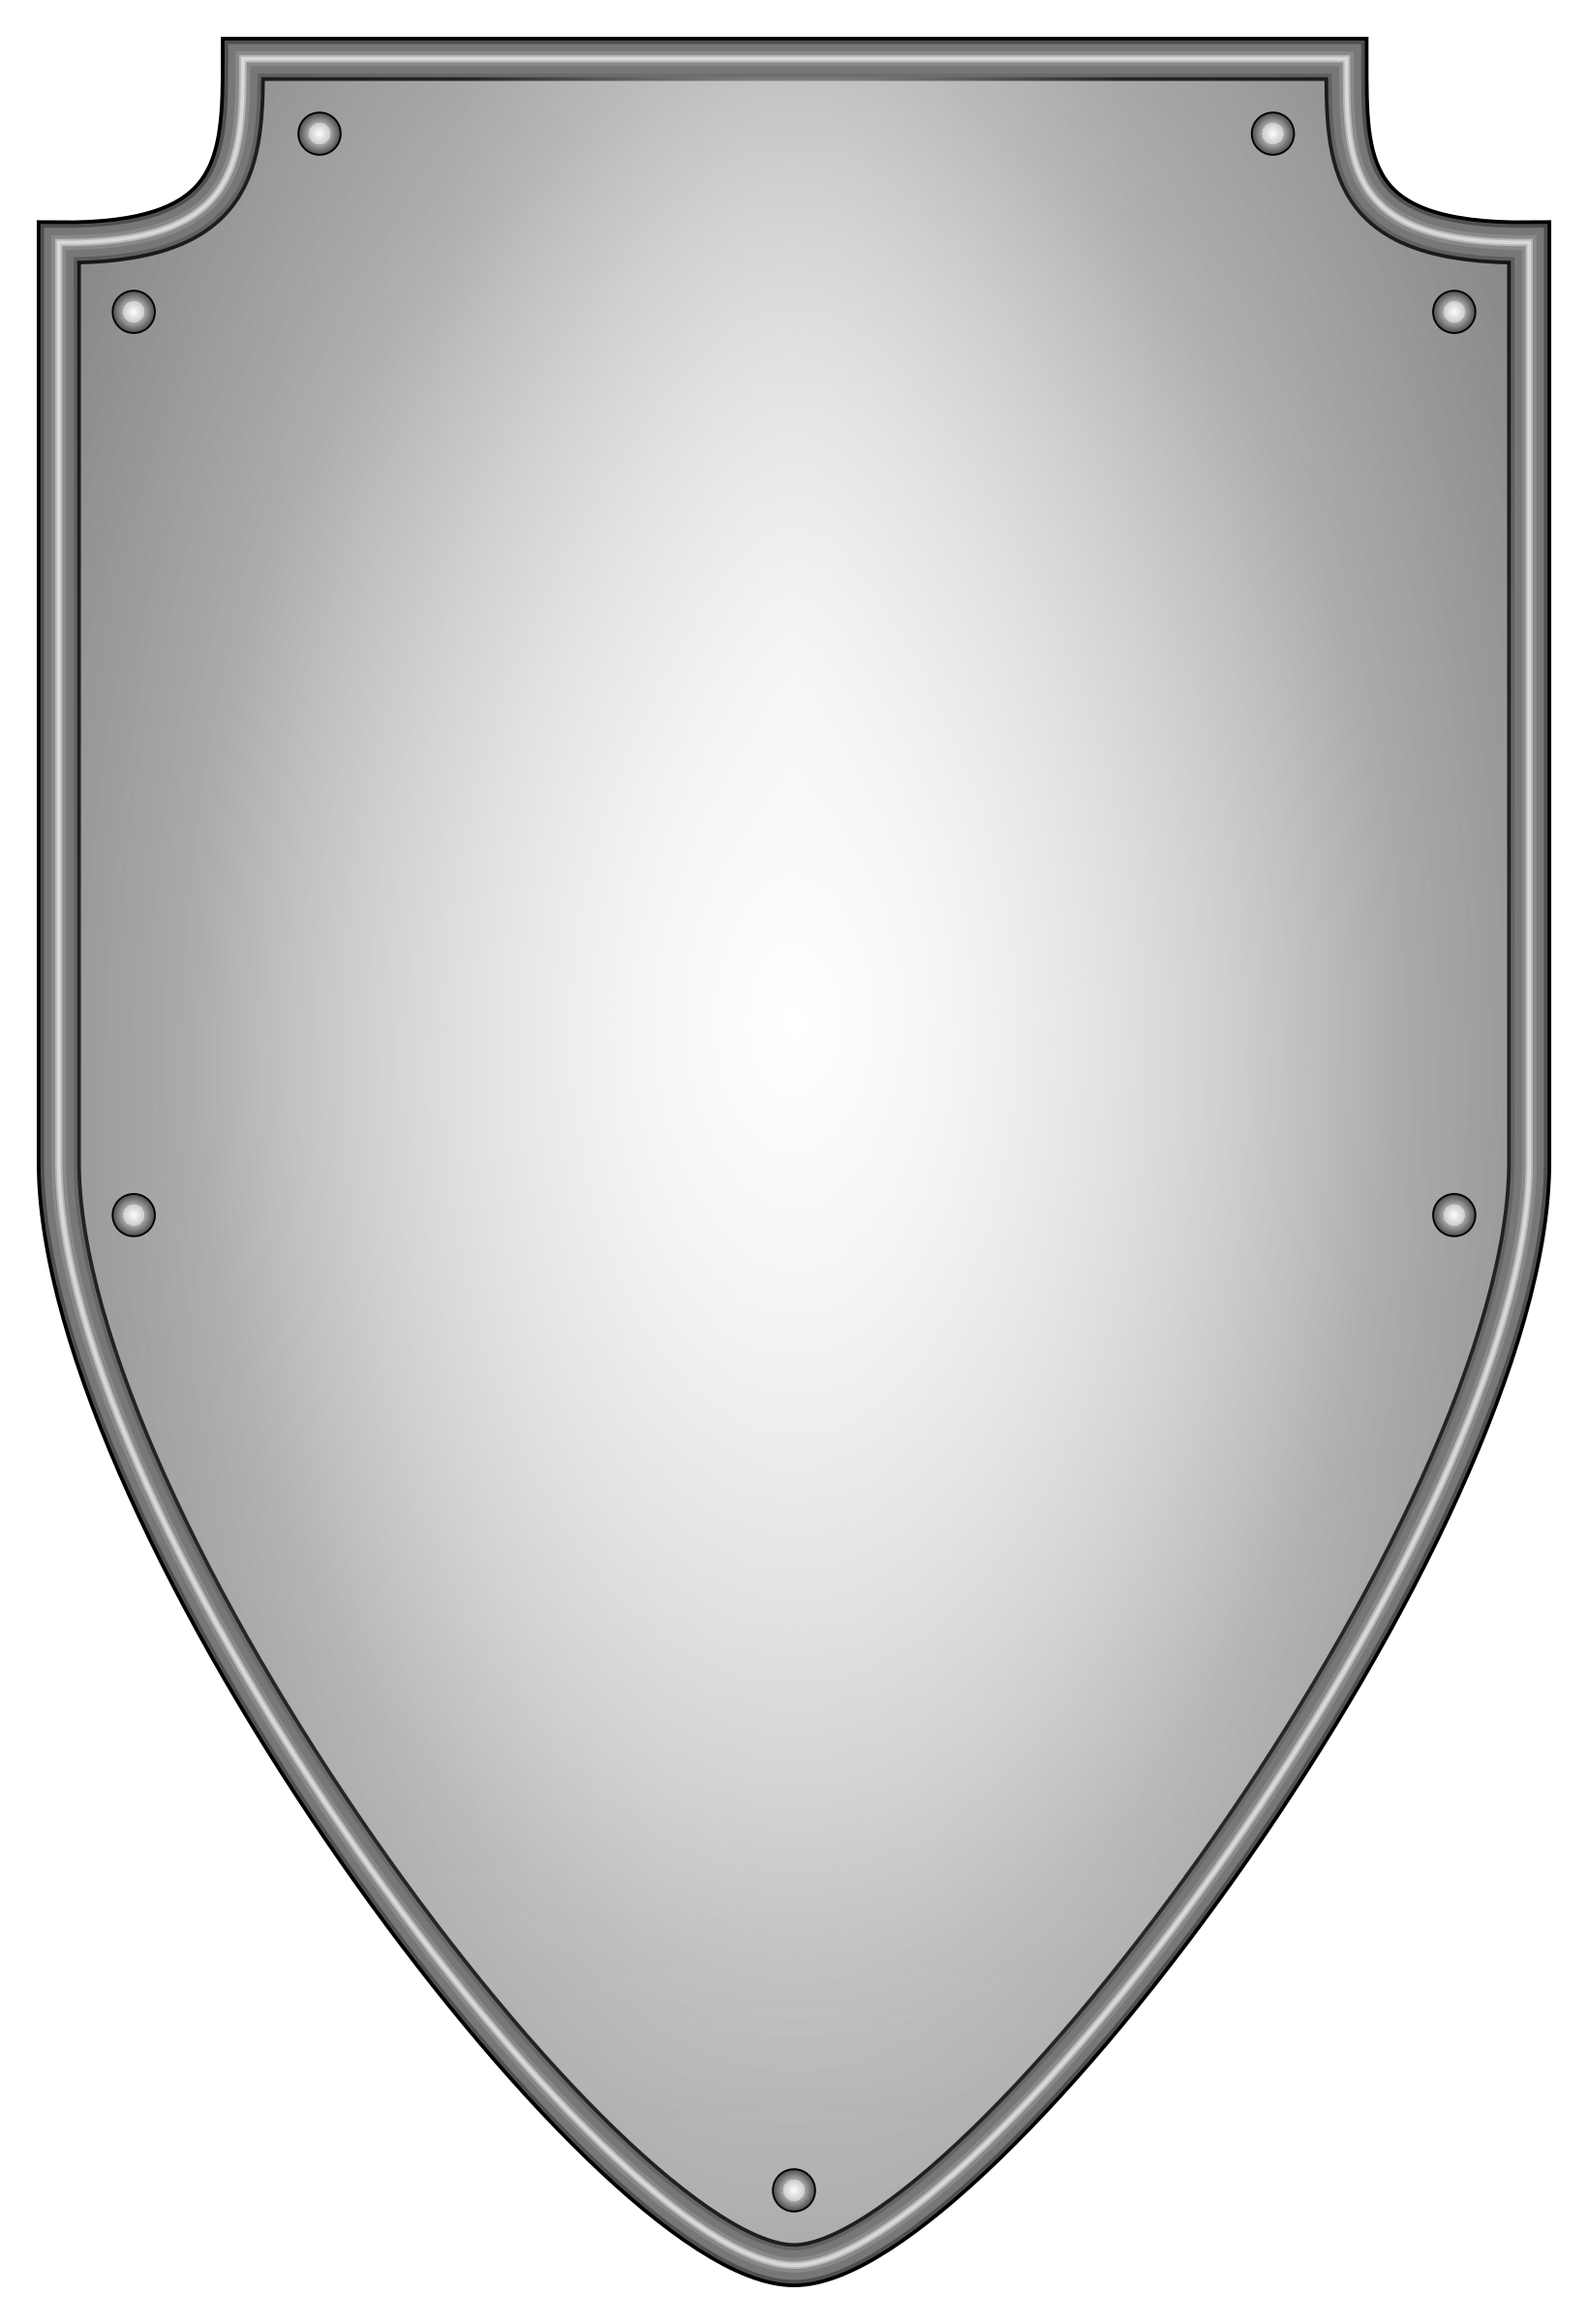 Blank shield png. Clipart big image